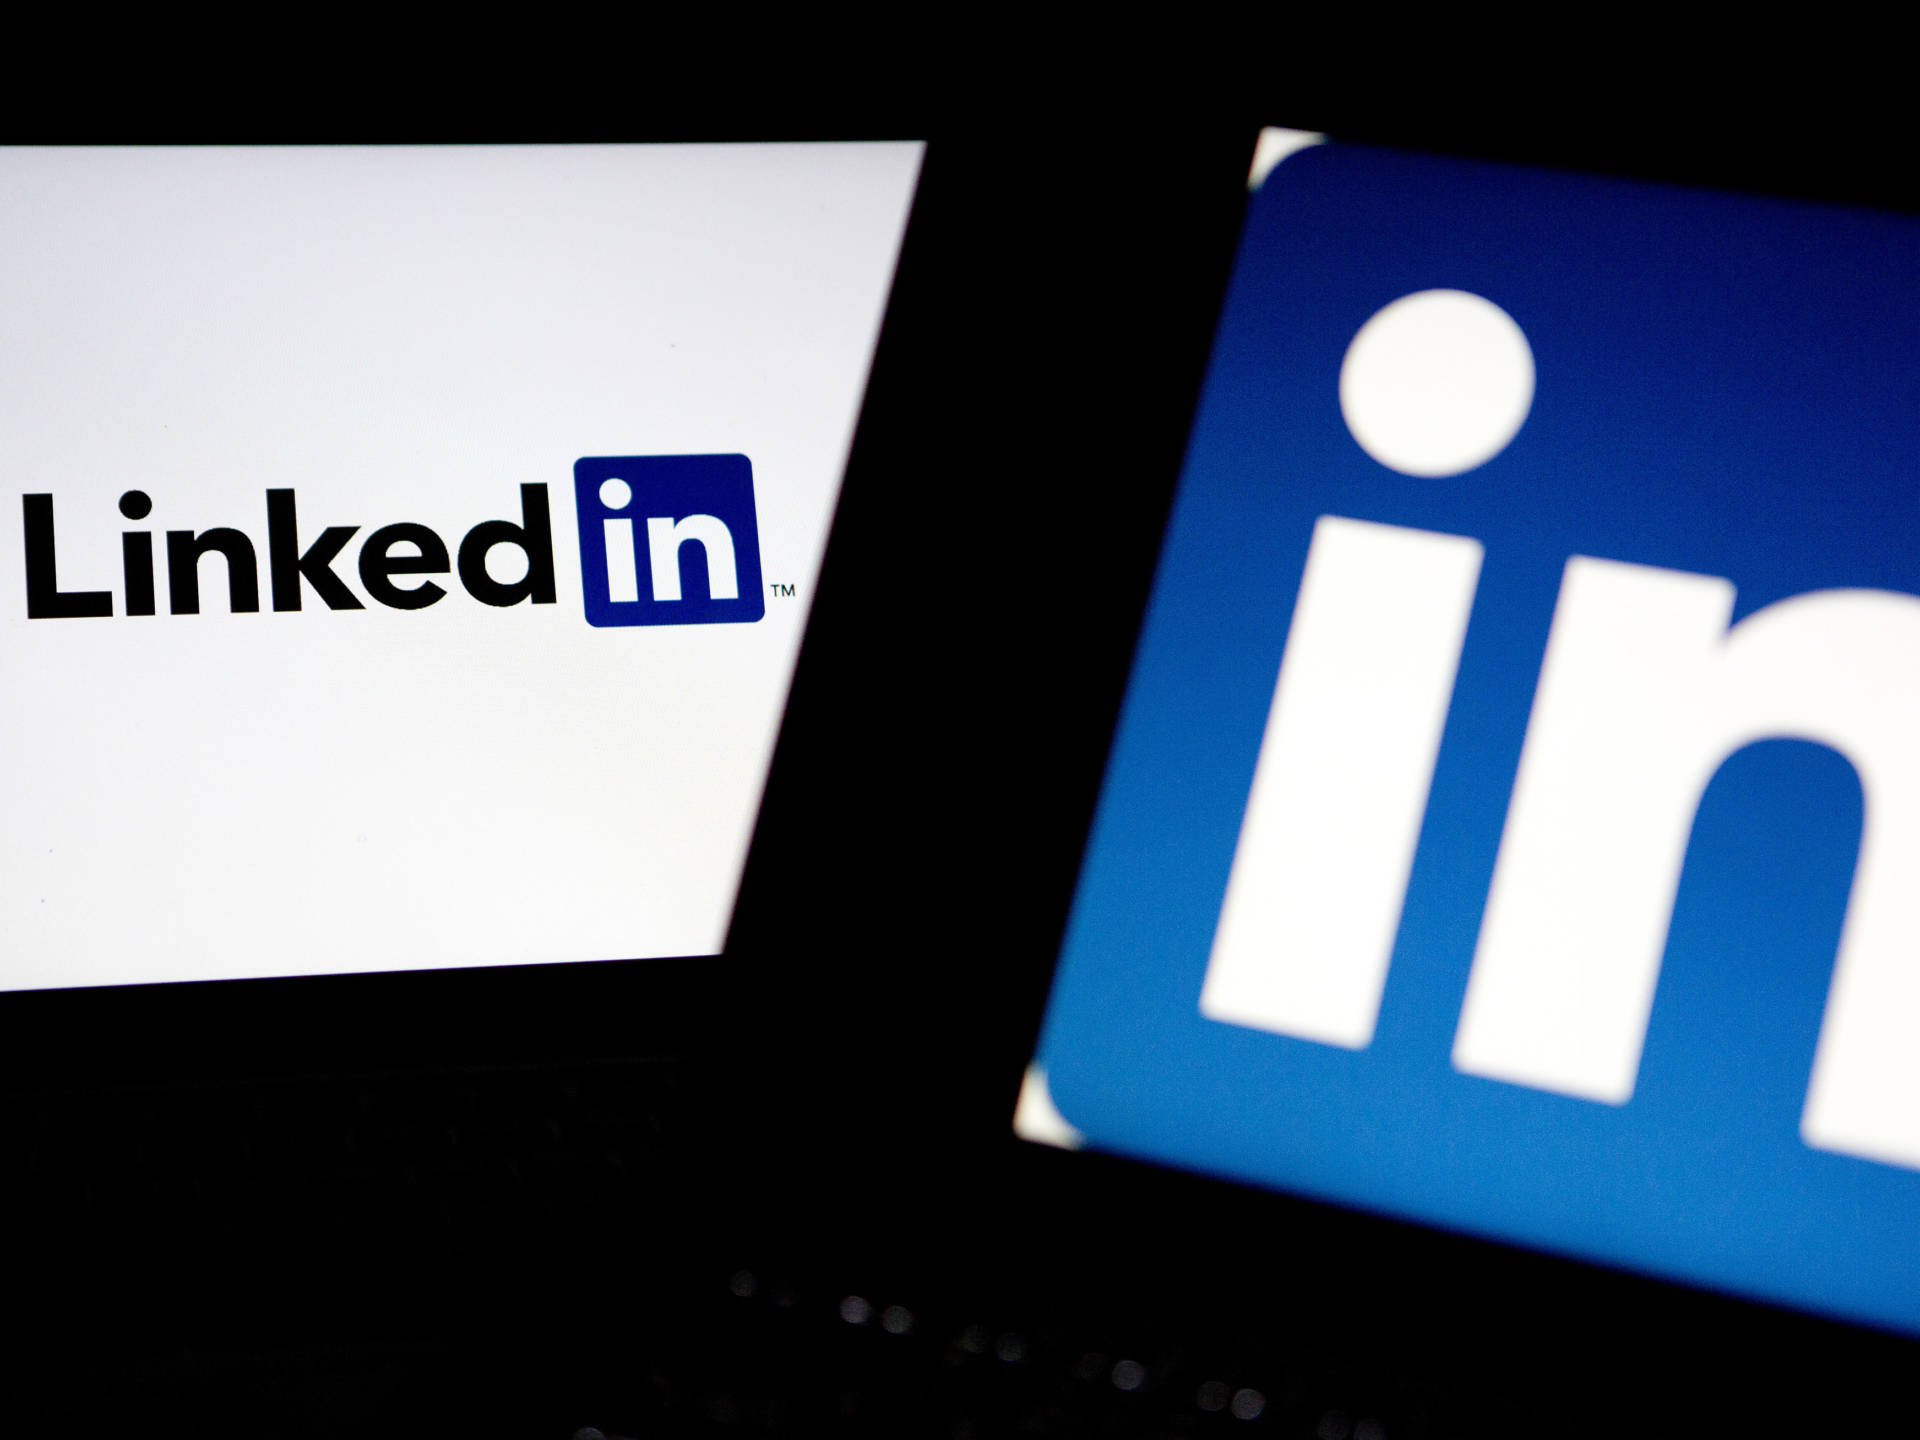 Microsoft Buys LinkedIn, Making Big Bet on Reinventing Workplace